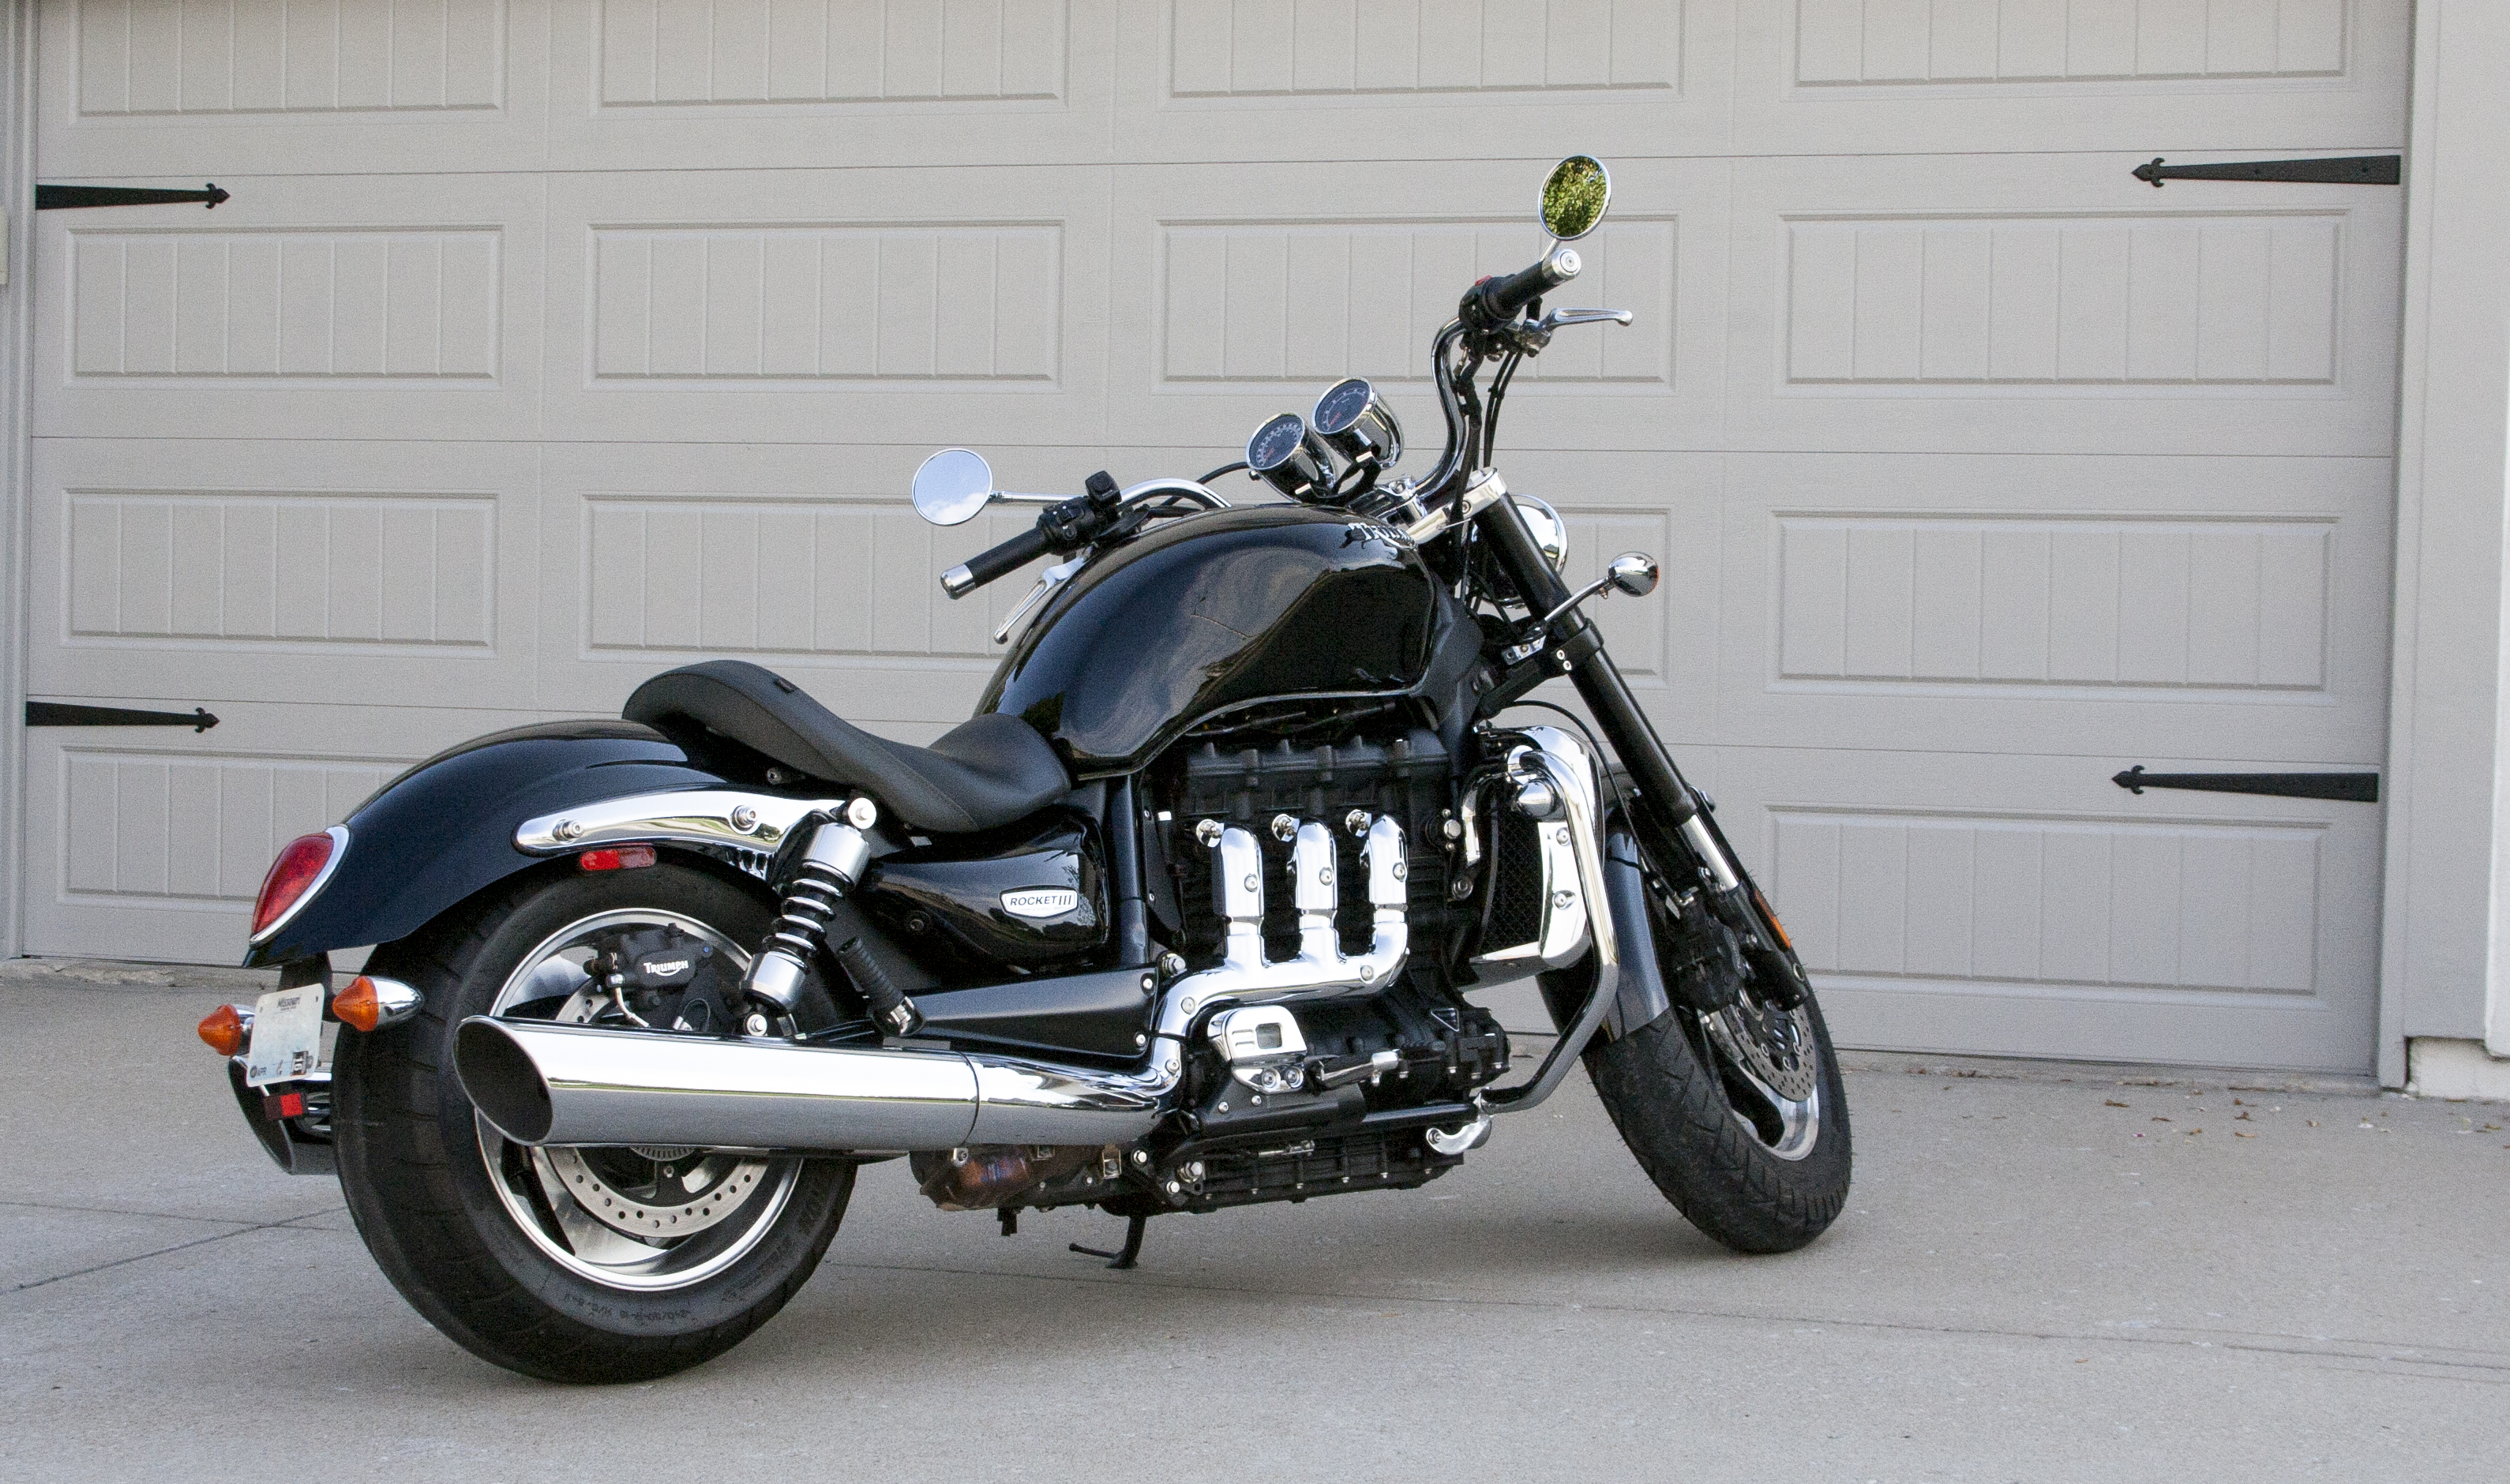 2010 triumph rocket iii roadster long term test report cycle connections motorcycle magazine. Black Bedroom Furniture Sets. Home Design Ideas